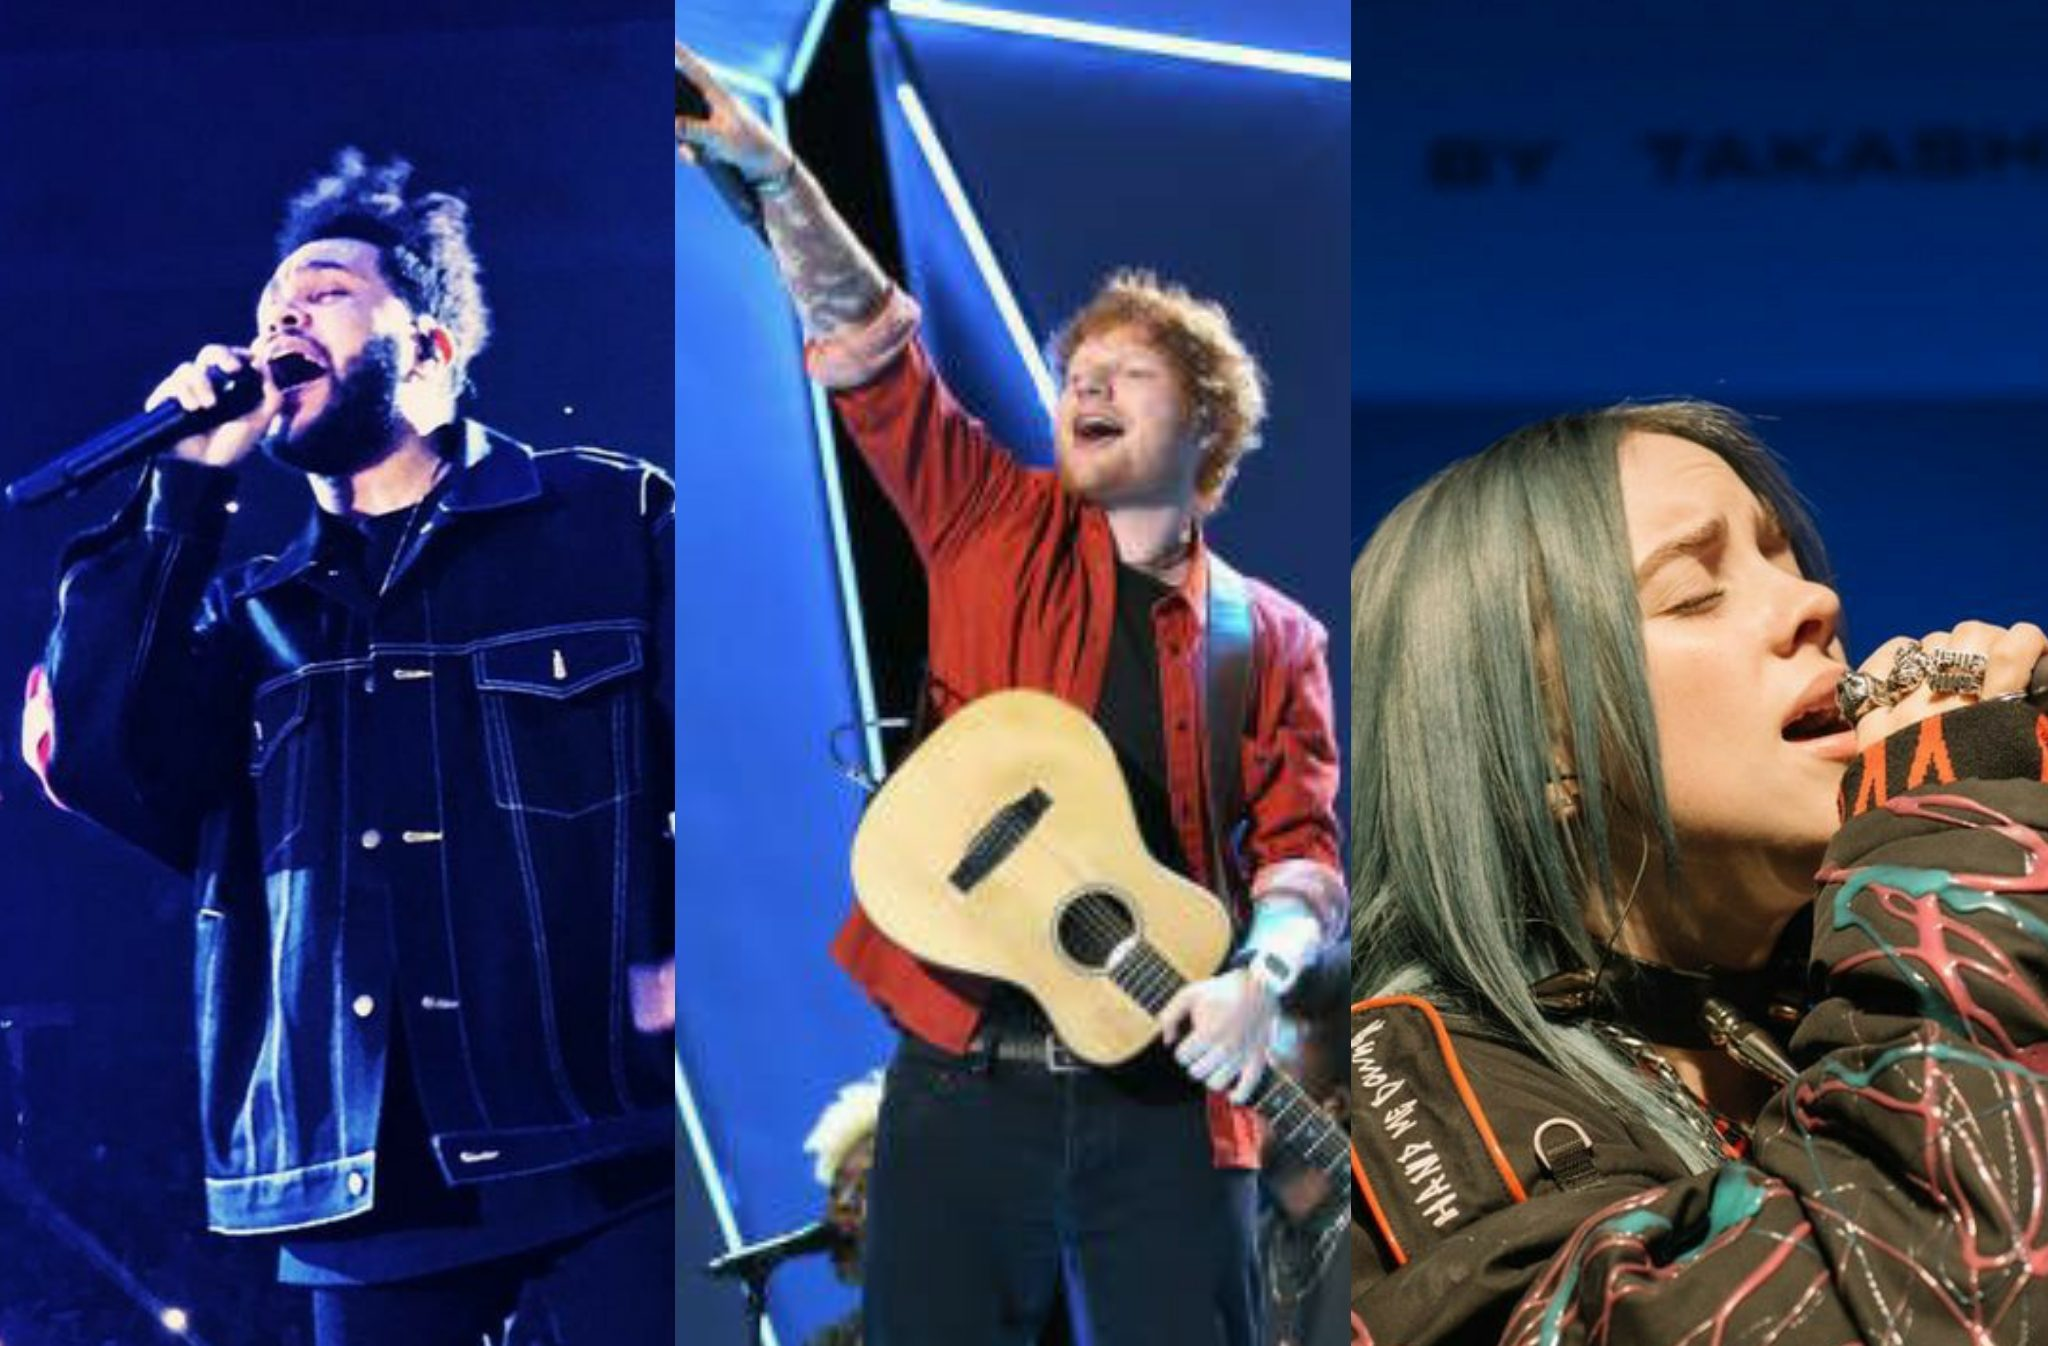 24-hour Covid benefit concert announced with the Weeknd, Billie Eilish, and more